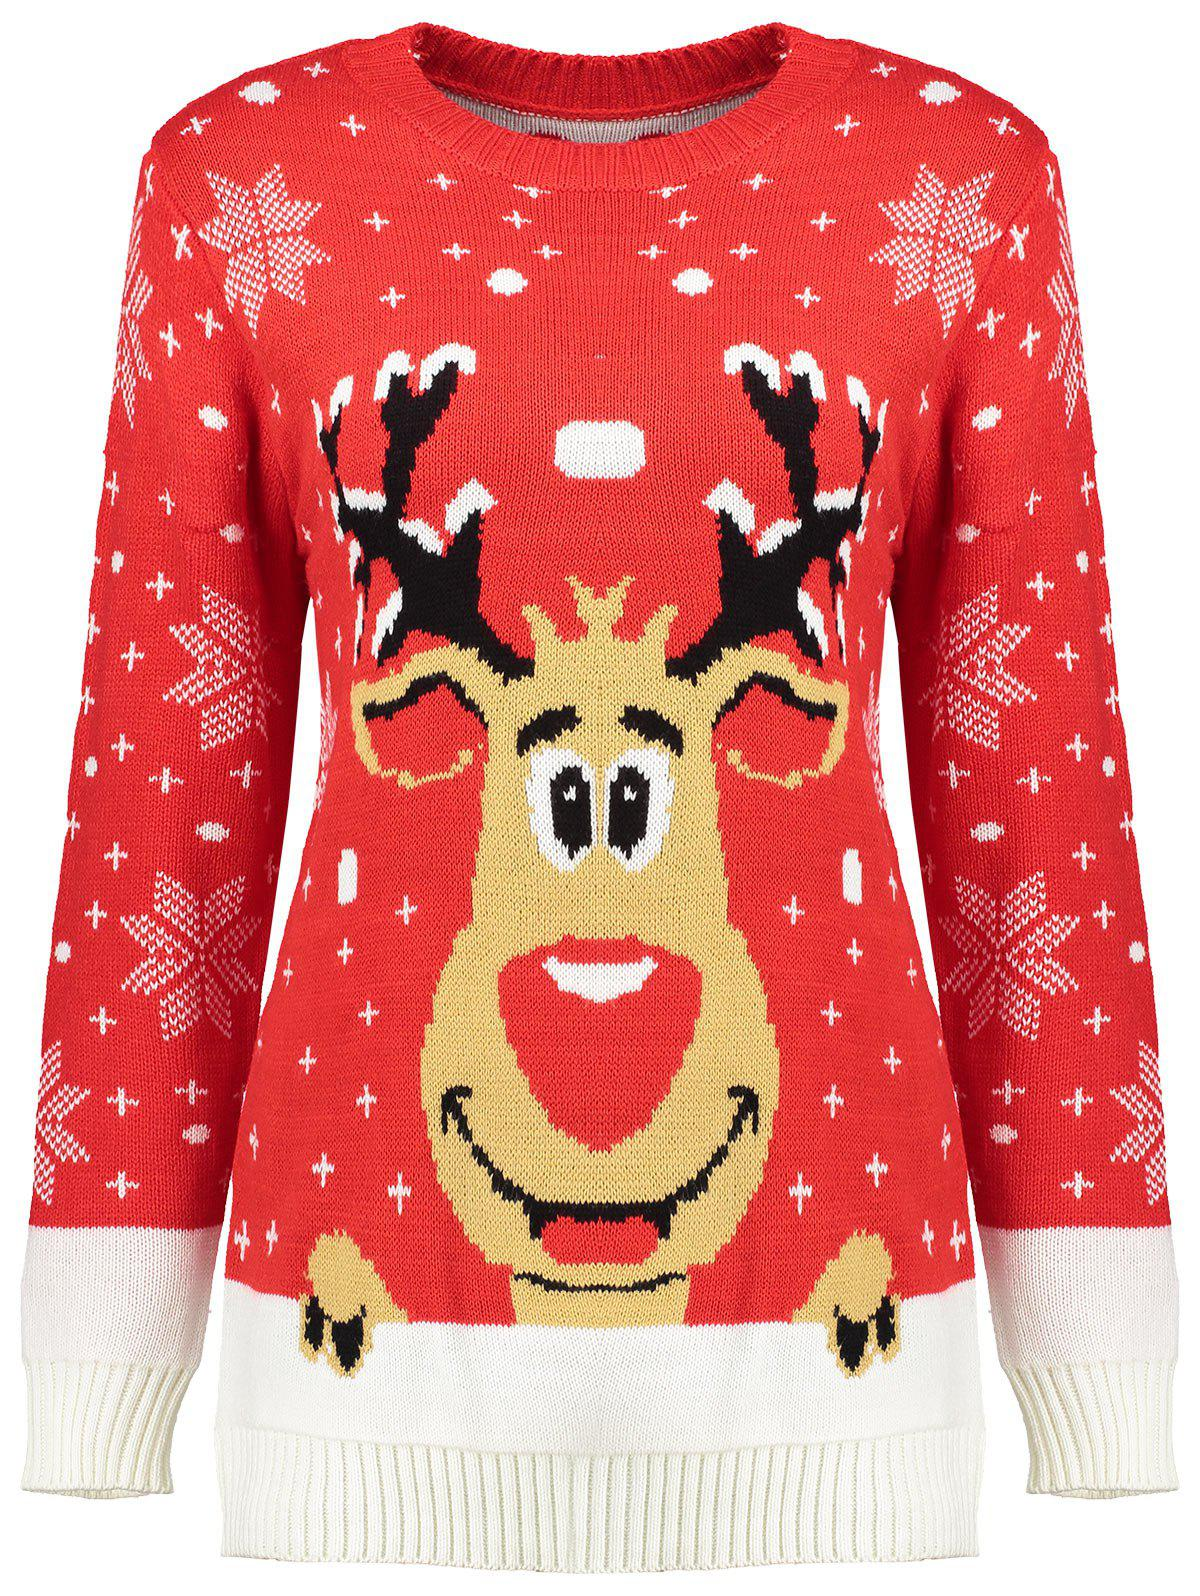 Snowflake Reindeer Christmas SweaterWOMEN<br><br>Size: ONE SIZE; Color: RED; Type: Pullovers; Material: Acrylic; Sleeve Length: Full; Collar: Crew Neck; Style: Fashion; Pattern Type: Animal; Season: Fall,Spring; Weight: 0.5000kg; Package Contents: 1 x Sweater;